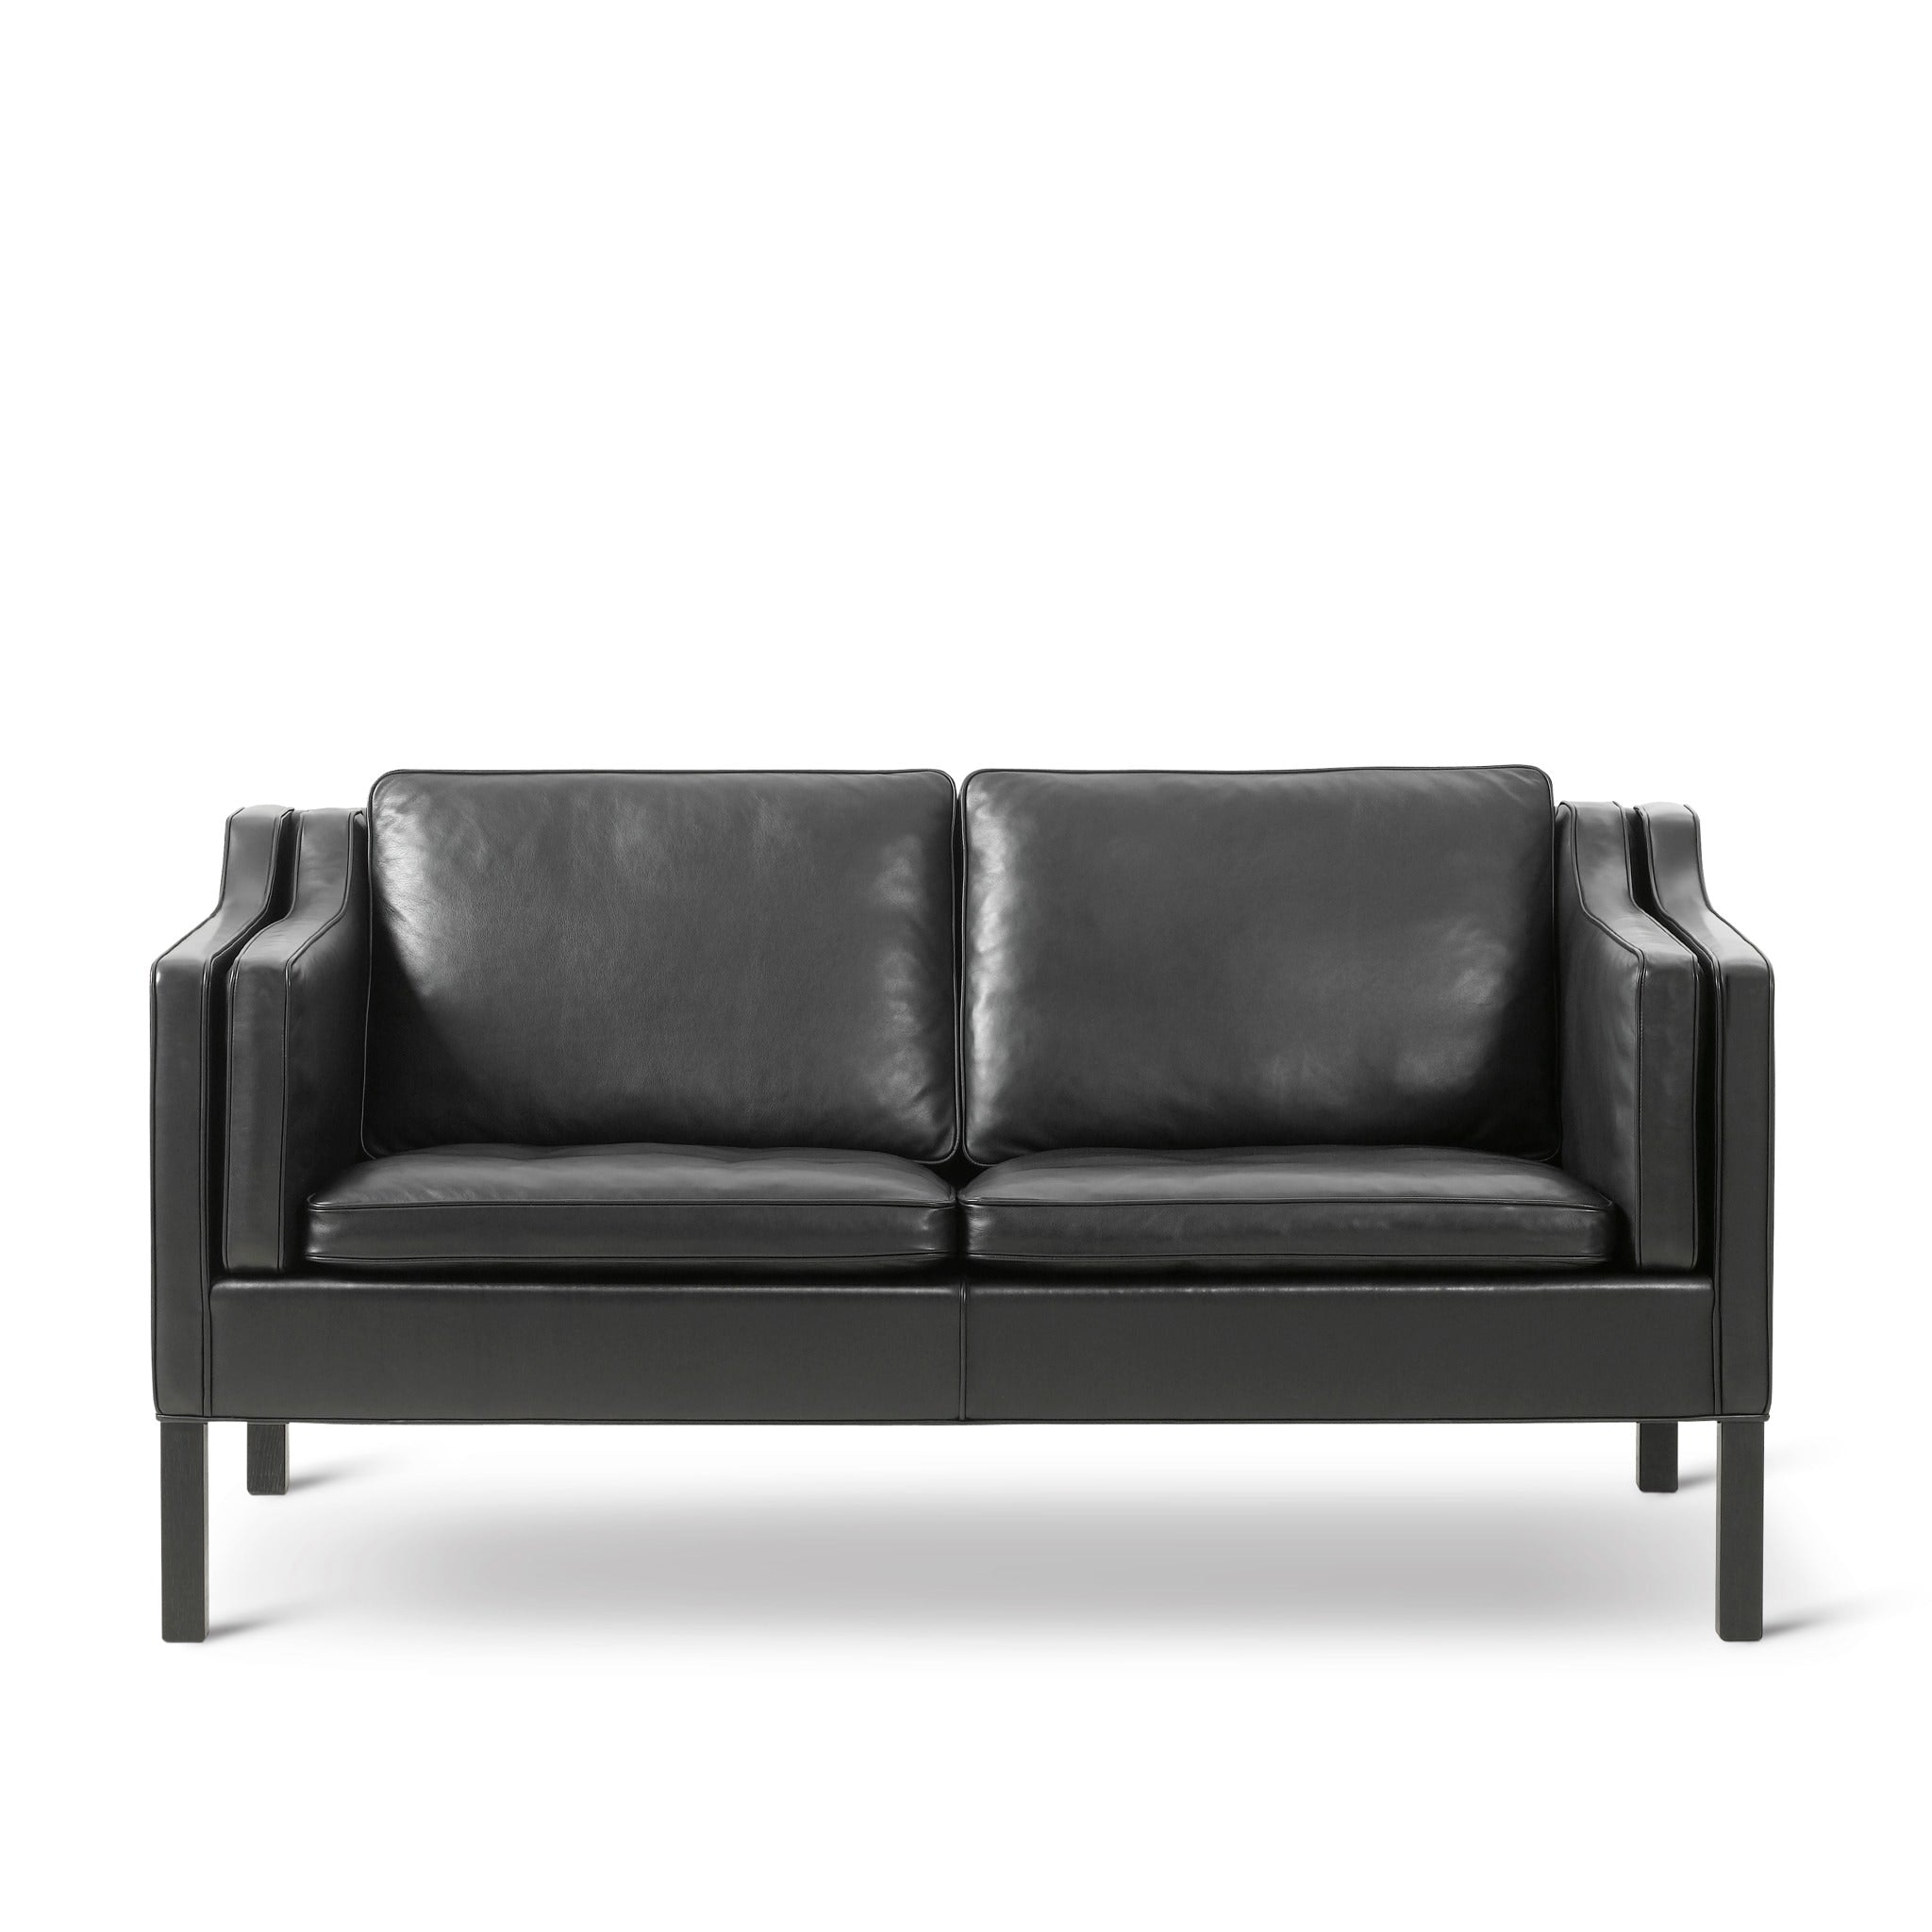 2212 Two-Seater Sofa by Fredericia